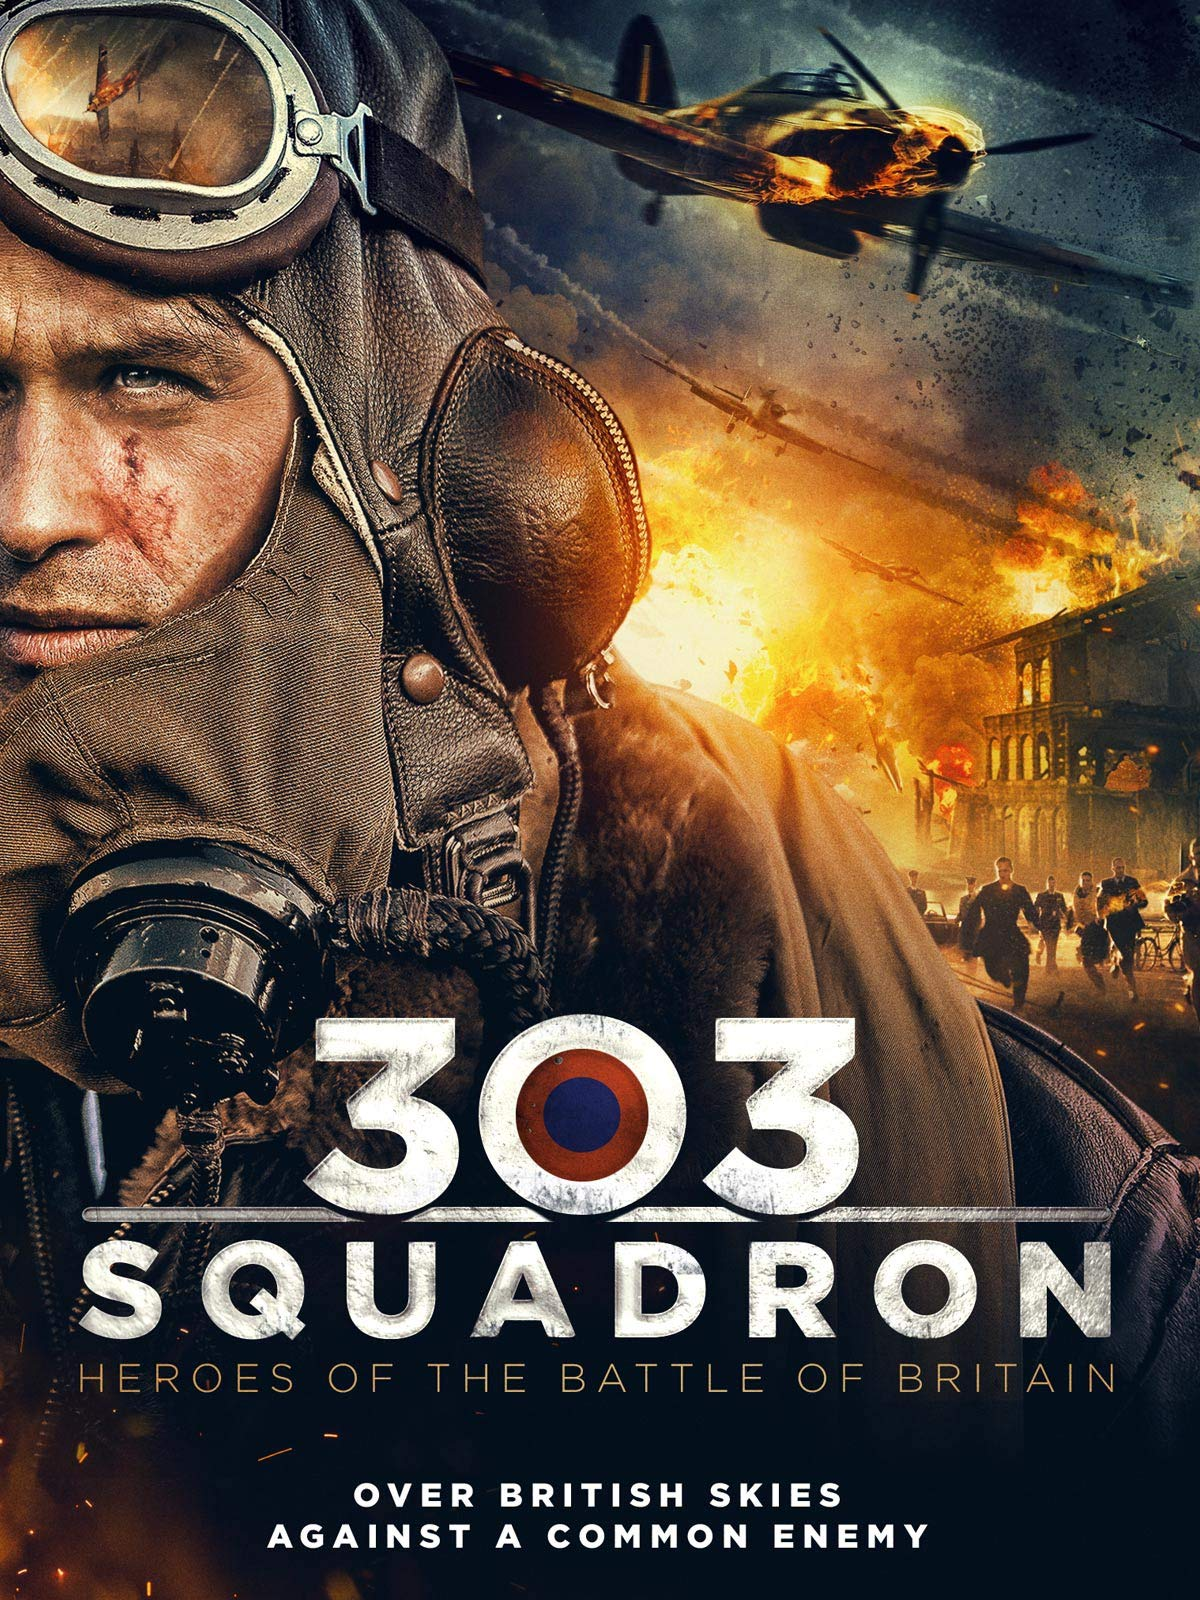 303 Squadron: Heroes of the Battle of Britain